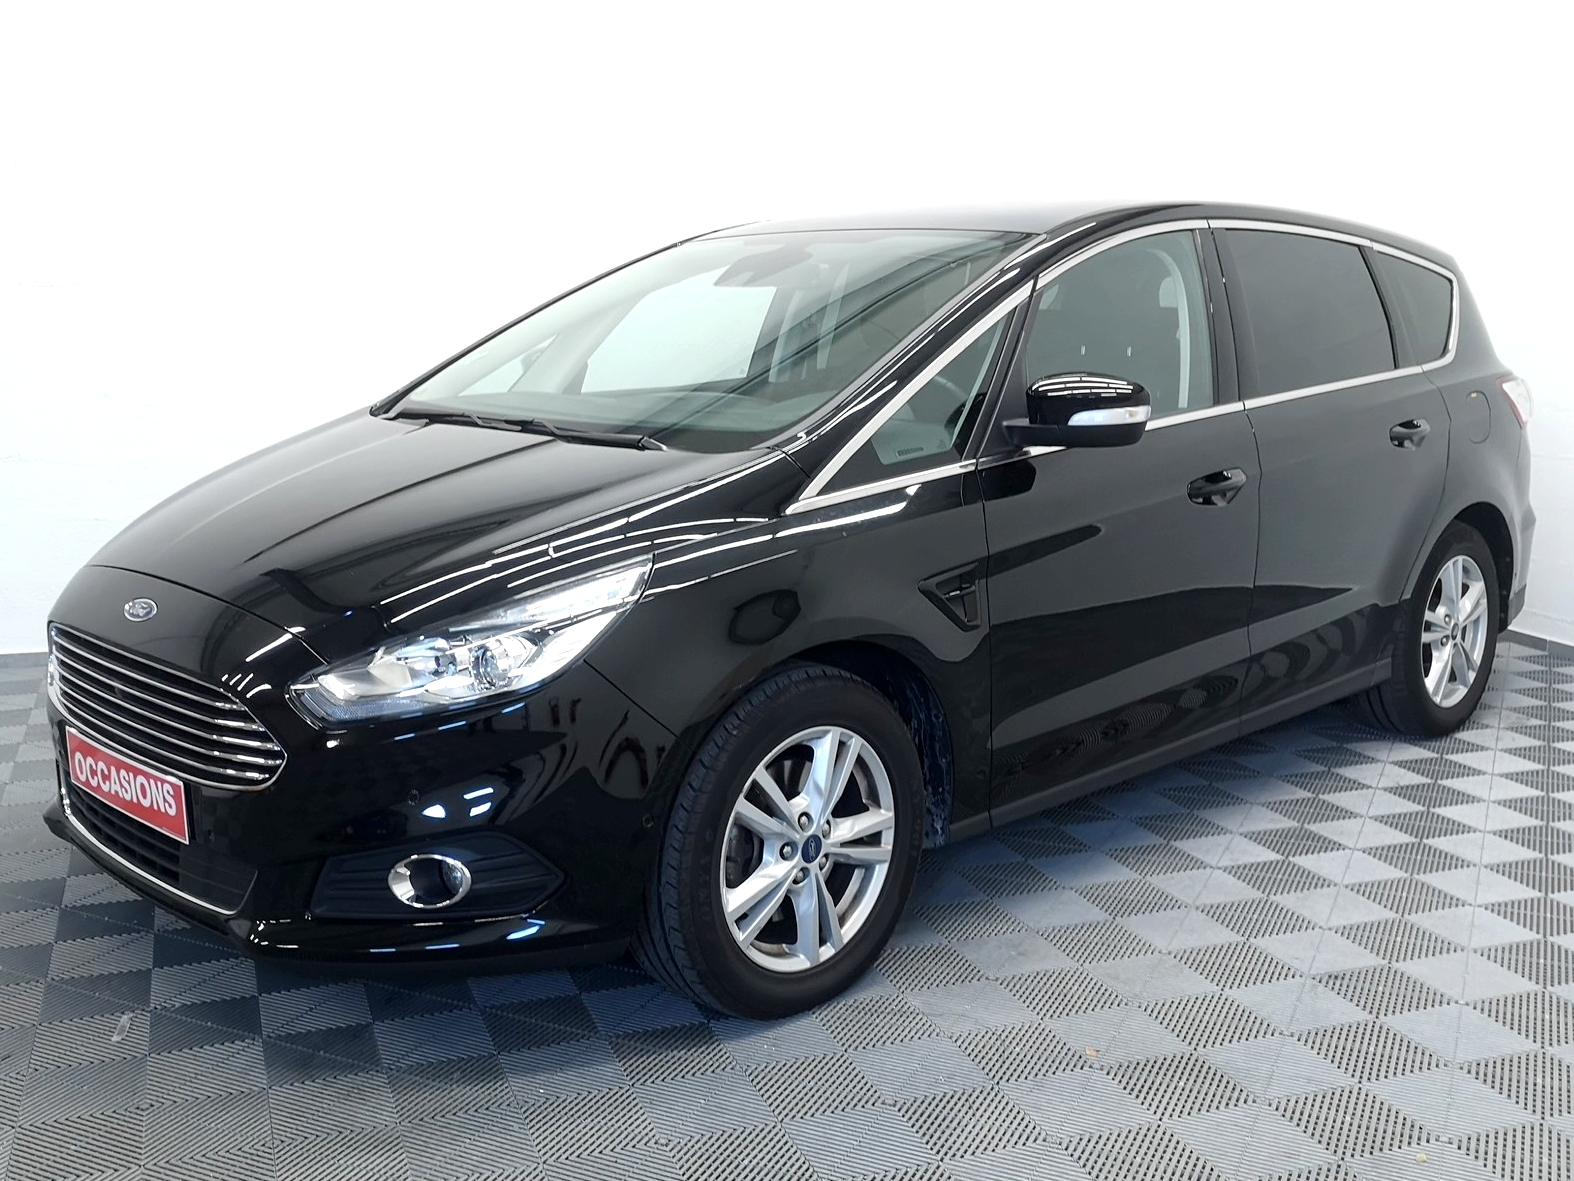 FORD S MAX 2.0 TDCi 150 S&S Titanium Powershift A d'occasion